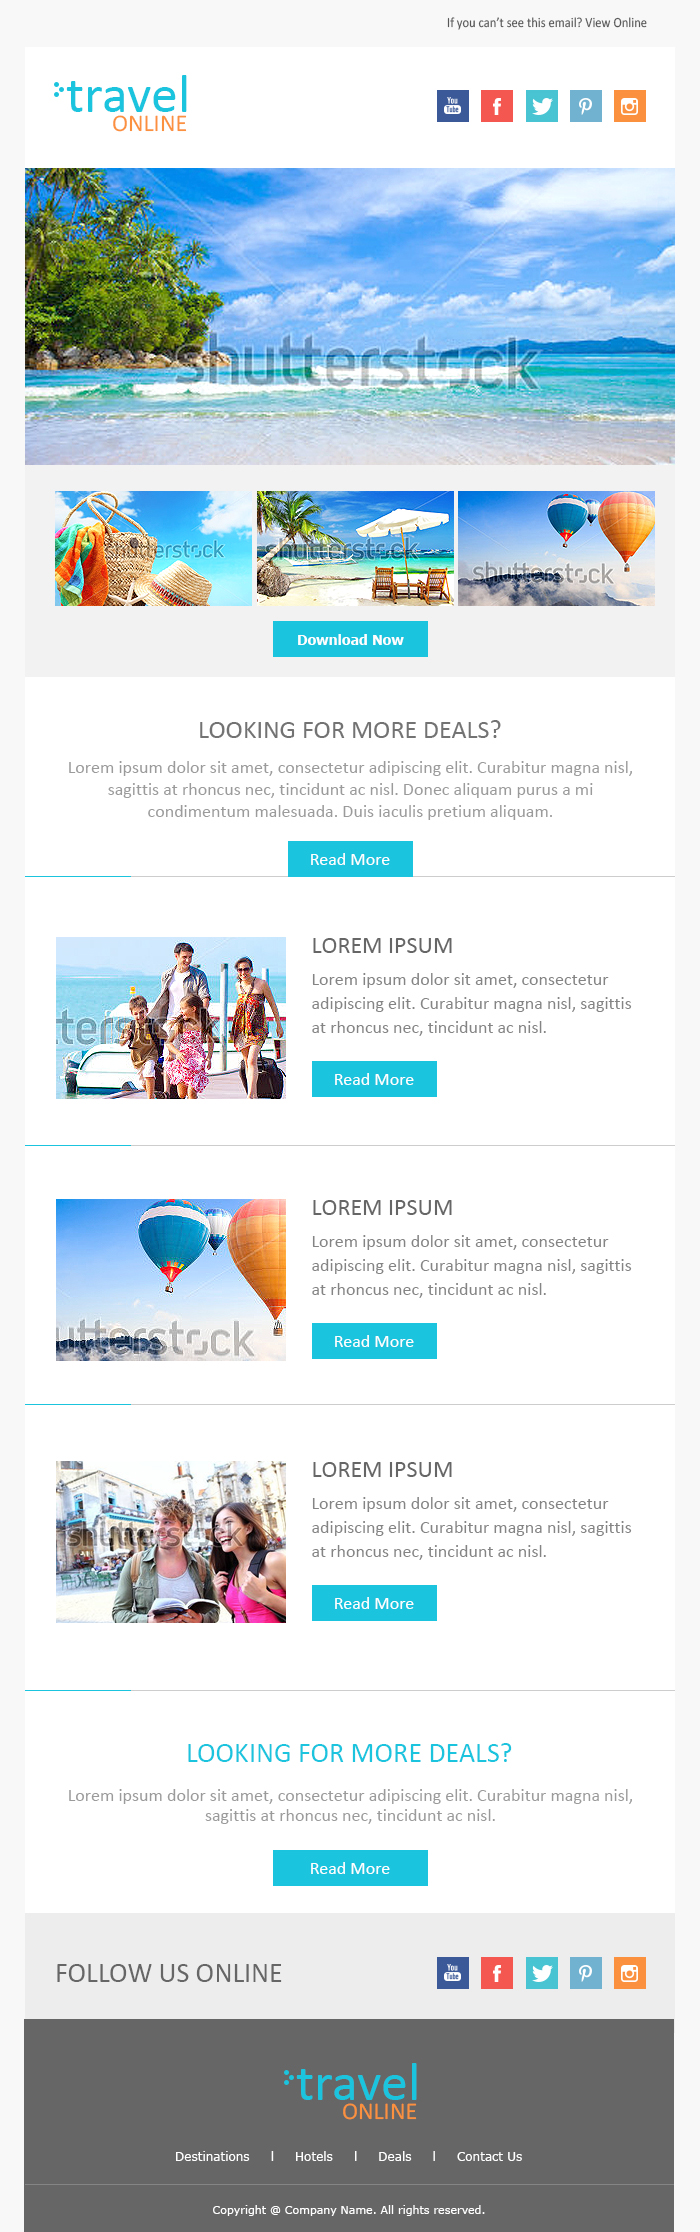 Email Newsletter Examples Business Email Templates Sample  Sh